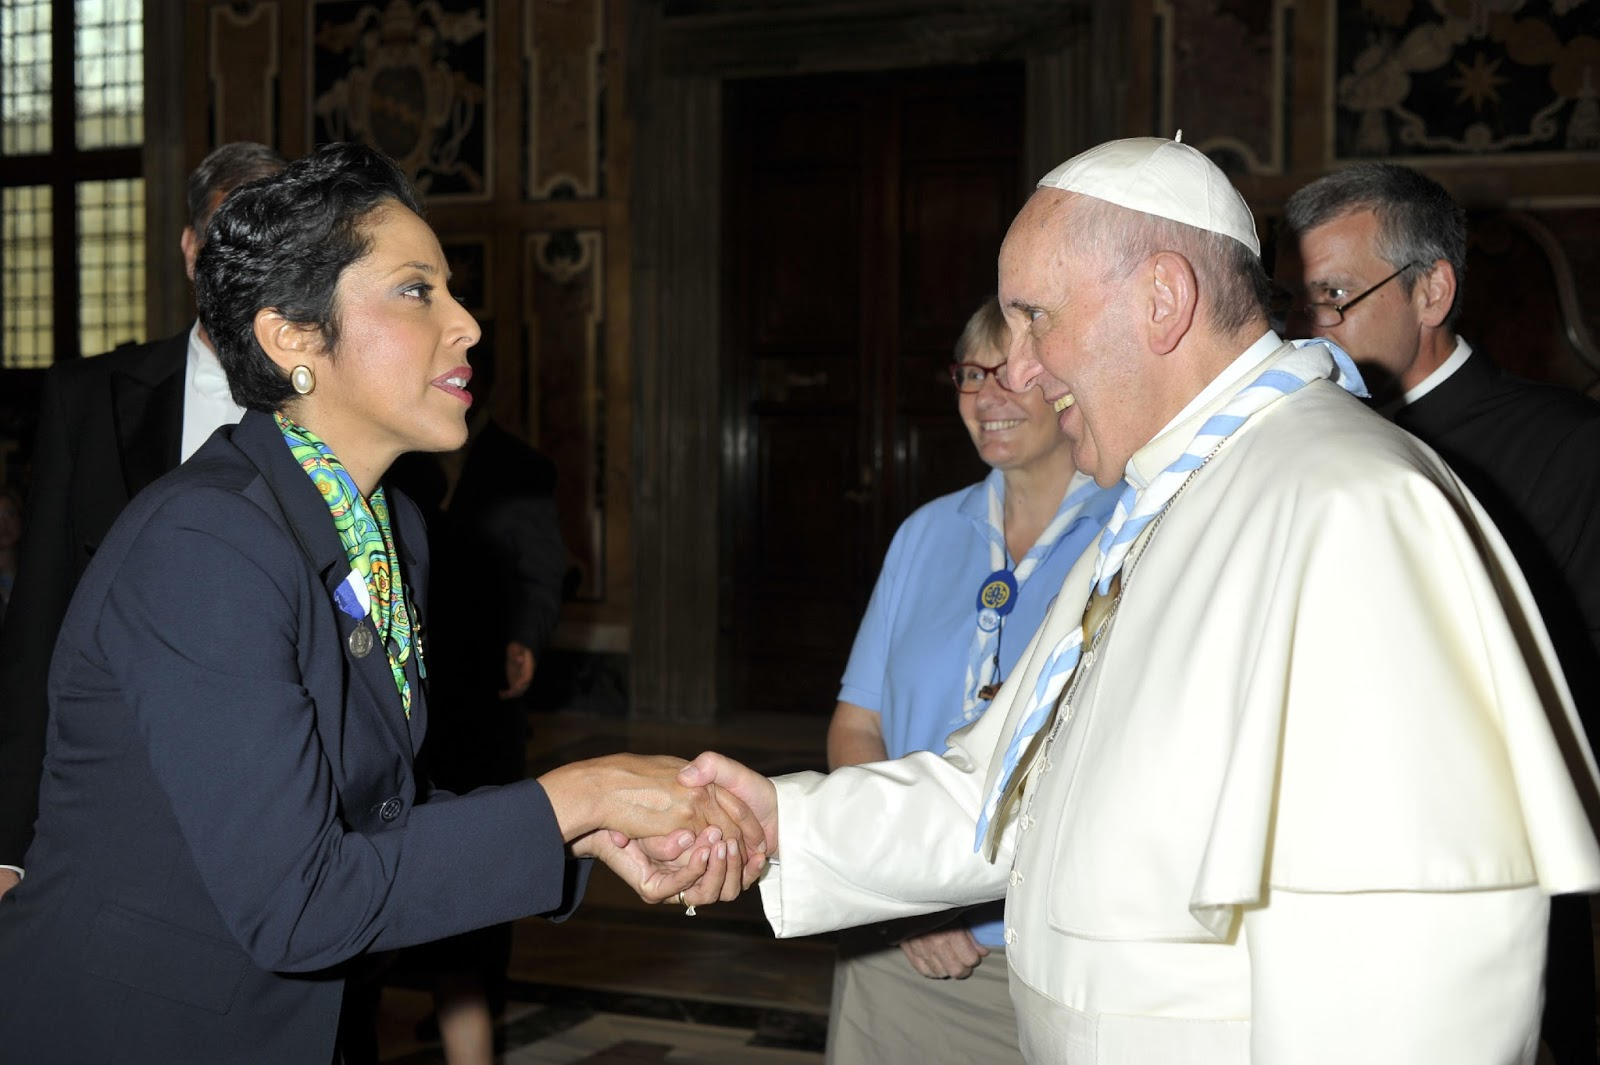 Pope Francis and Anna Maria Chávez Shaking Hands